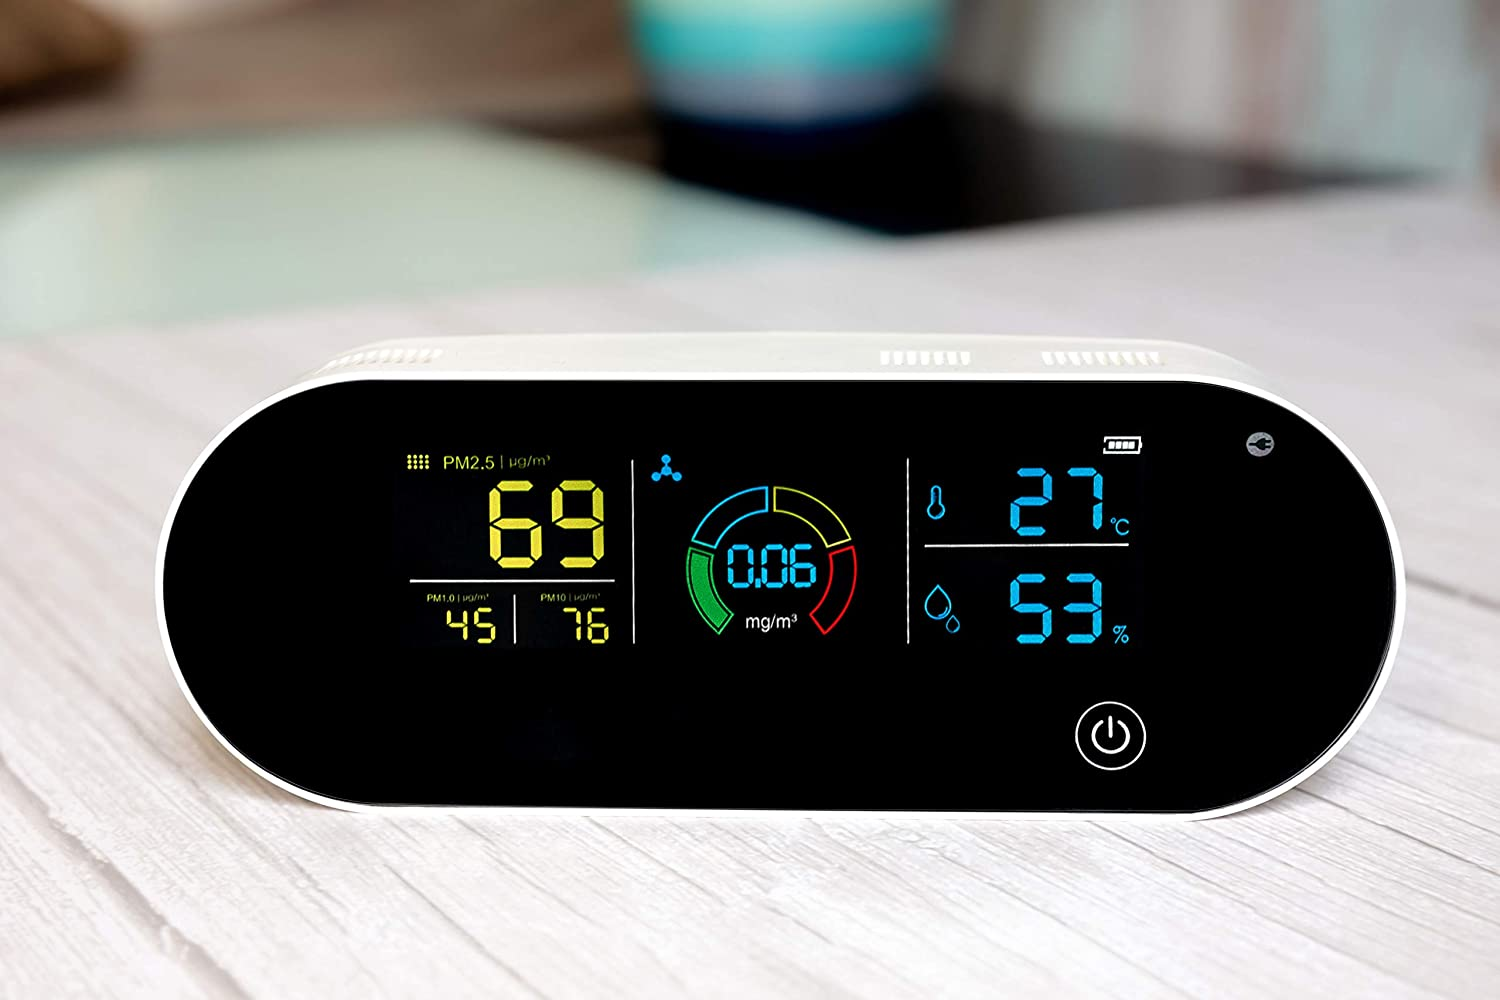 Elegant 7 in 1 Air Quality Monitor Portable Indoor Meter AQI, HCHO PM2.5 PM1.0 PM10 Temperature Humidity